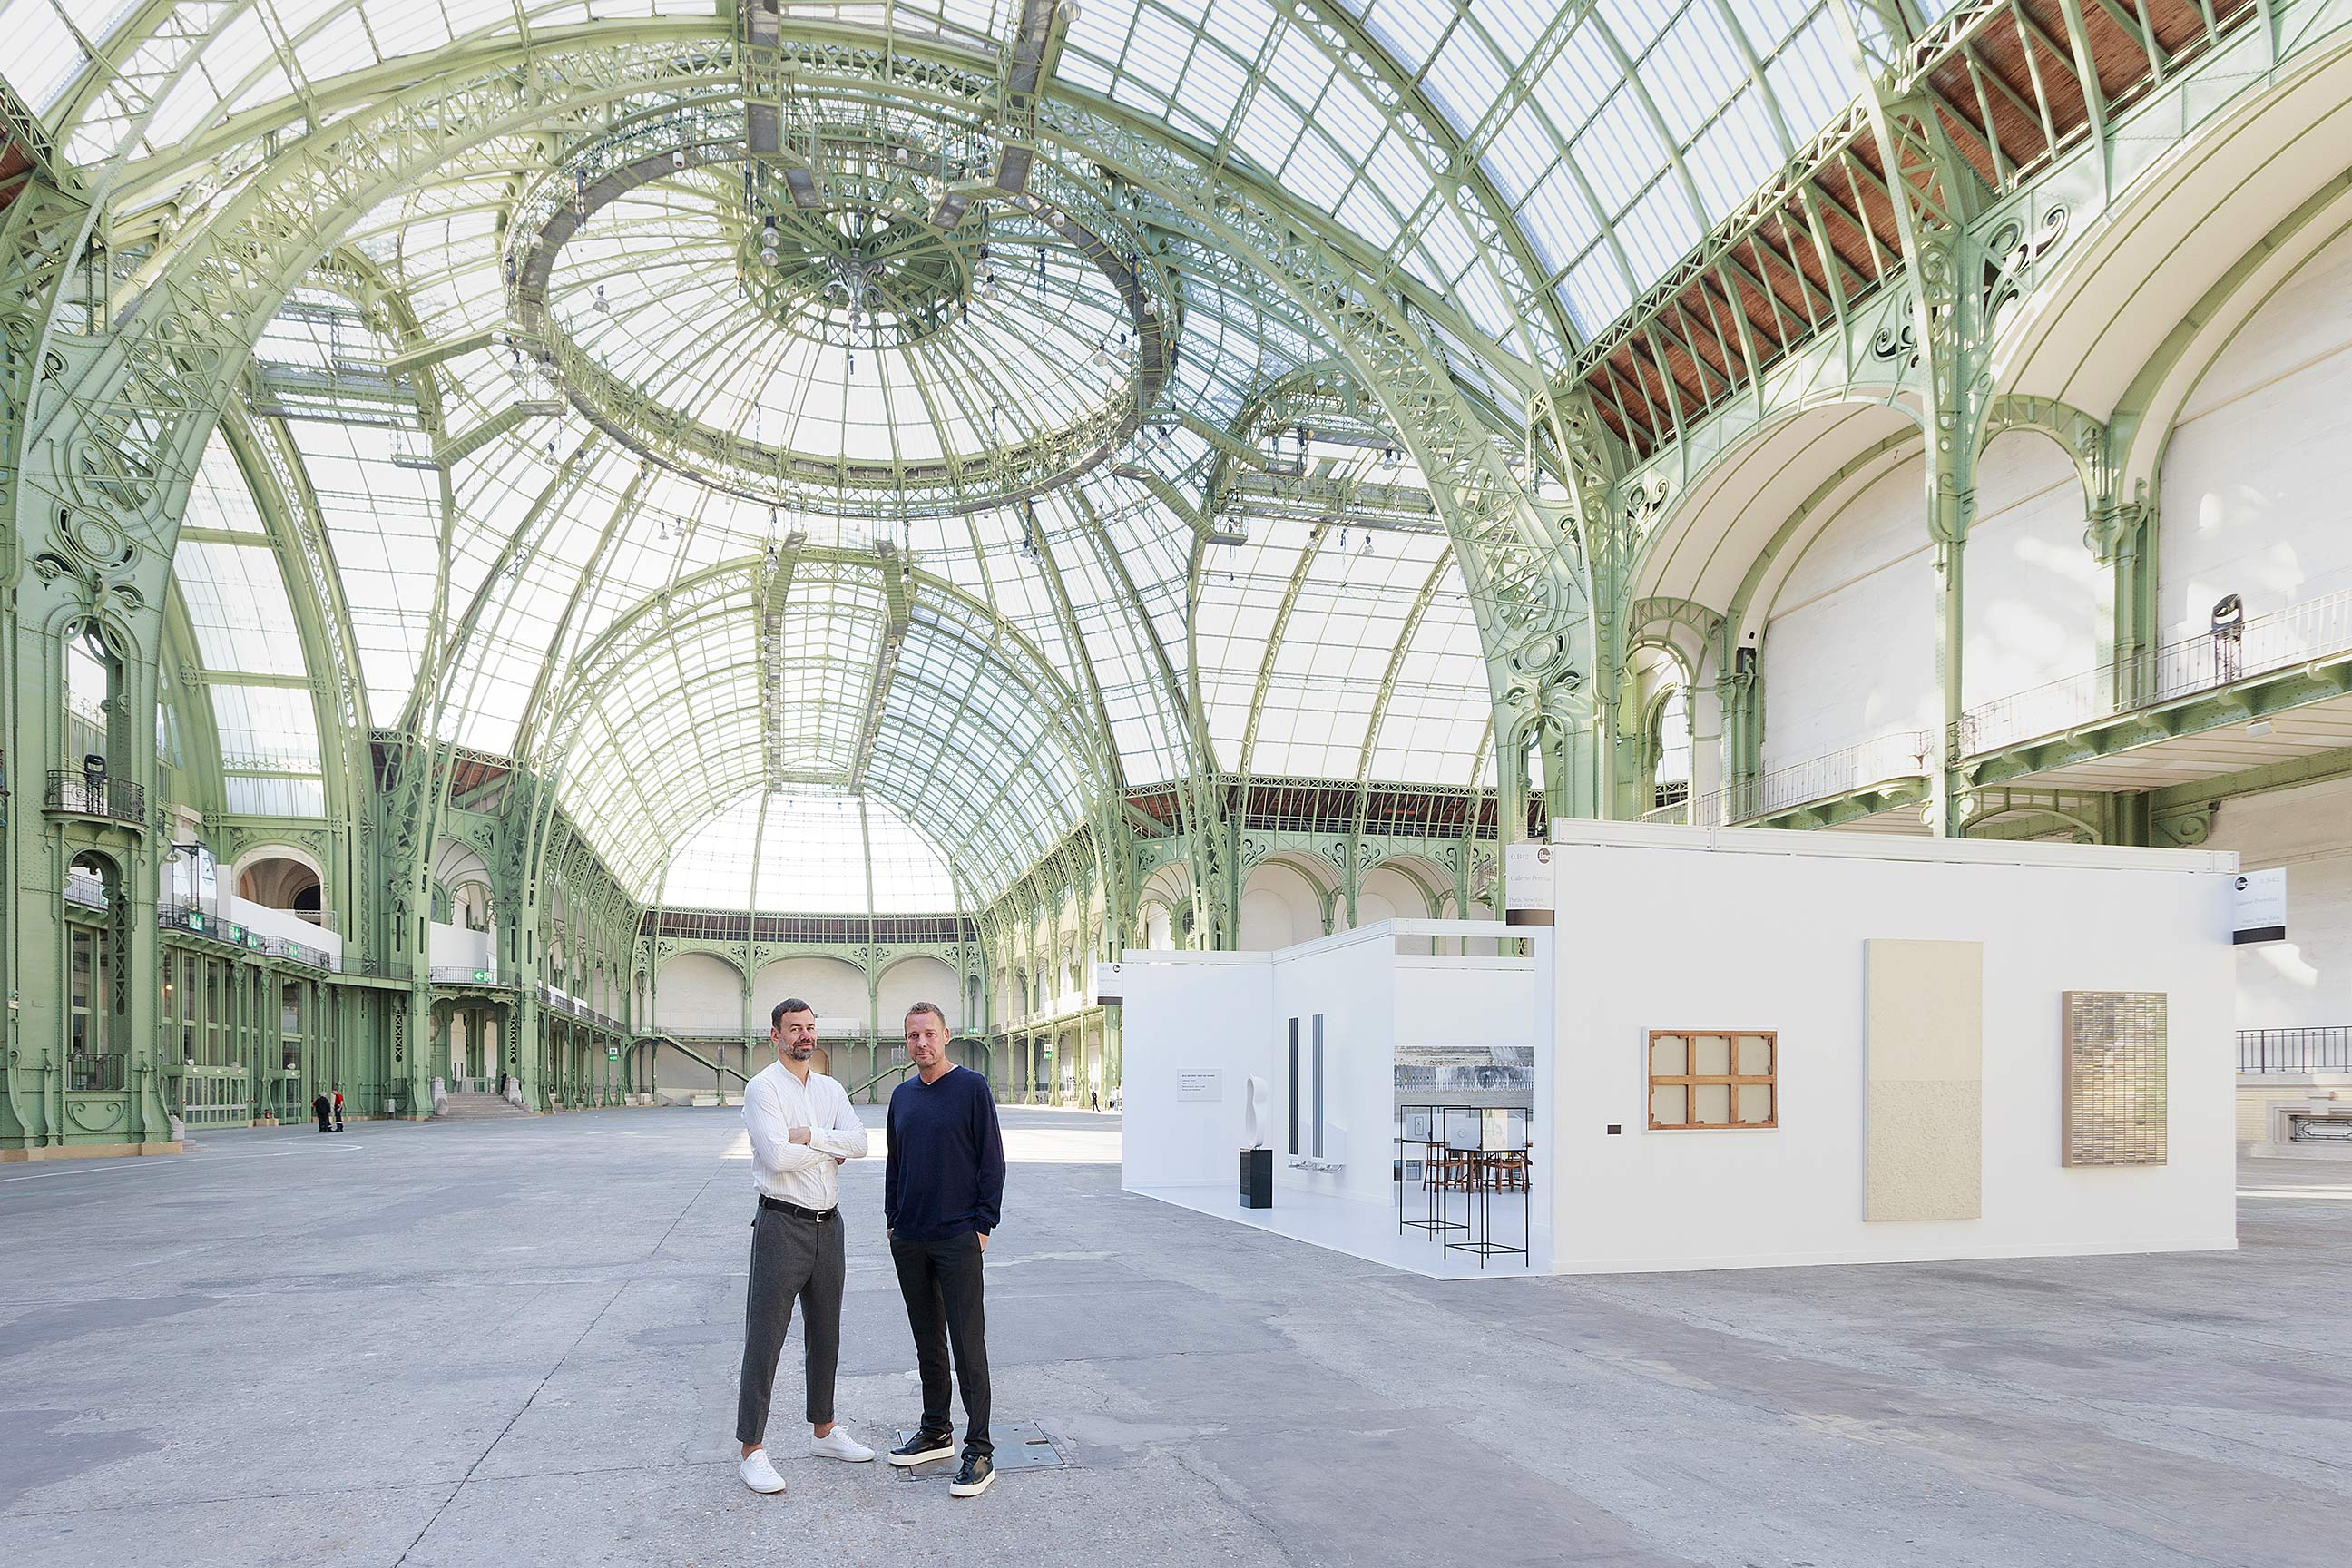 "Elmgreen & Dragset portrait in front of the one-day installation Elmgreen & Dragset présentent la Galerie Perrotin au Grand Palais in Paris on Saturday, September 24th 2016. Photo: Claire Dorn, courtesy Galerie Perrotin   It's always a show of strength when it comes to one of the most important gallery owners in France. And yet the spectacular privatisation on September 24th of the Grand Palais, an architectural gem, obviously costing a pretty penny, shouldn't overshadow the real masterstroke of the day: the artistic duo Elmgreen & Dragset.   In a completely empty Grand Palais the Dane and Norwegian set up the booth to be used by the Perrotin Gallery during the Foire internationale d'art contemporain taking place within the same walls a month later. This ""work stand"" was erected on the exact spot where it will be between October 20th and 23rd. ""The walls, the posters, the lighting elements… everything is an exact replica of what will be built in a month's time. We even had to work with the same companies who work on the FIAC"", the artists tell us. We're reminded of their installation ""Prada Marfa"" (2005), when the duo built a luxury boutique in the middle of the Texan desert. Except that here even the works exhibited are identical to those that will be presented during the fair: pieces by Elmgreen & Dragset of course, but also a KAWS, a Soto, a Murakami, a Veilhan, a JR…      The installation of the stand in an empty Grand Palais radically changes its relationship with space."